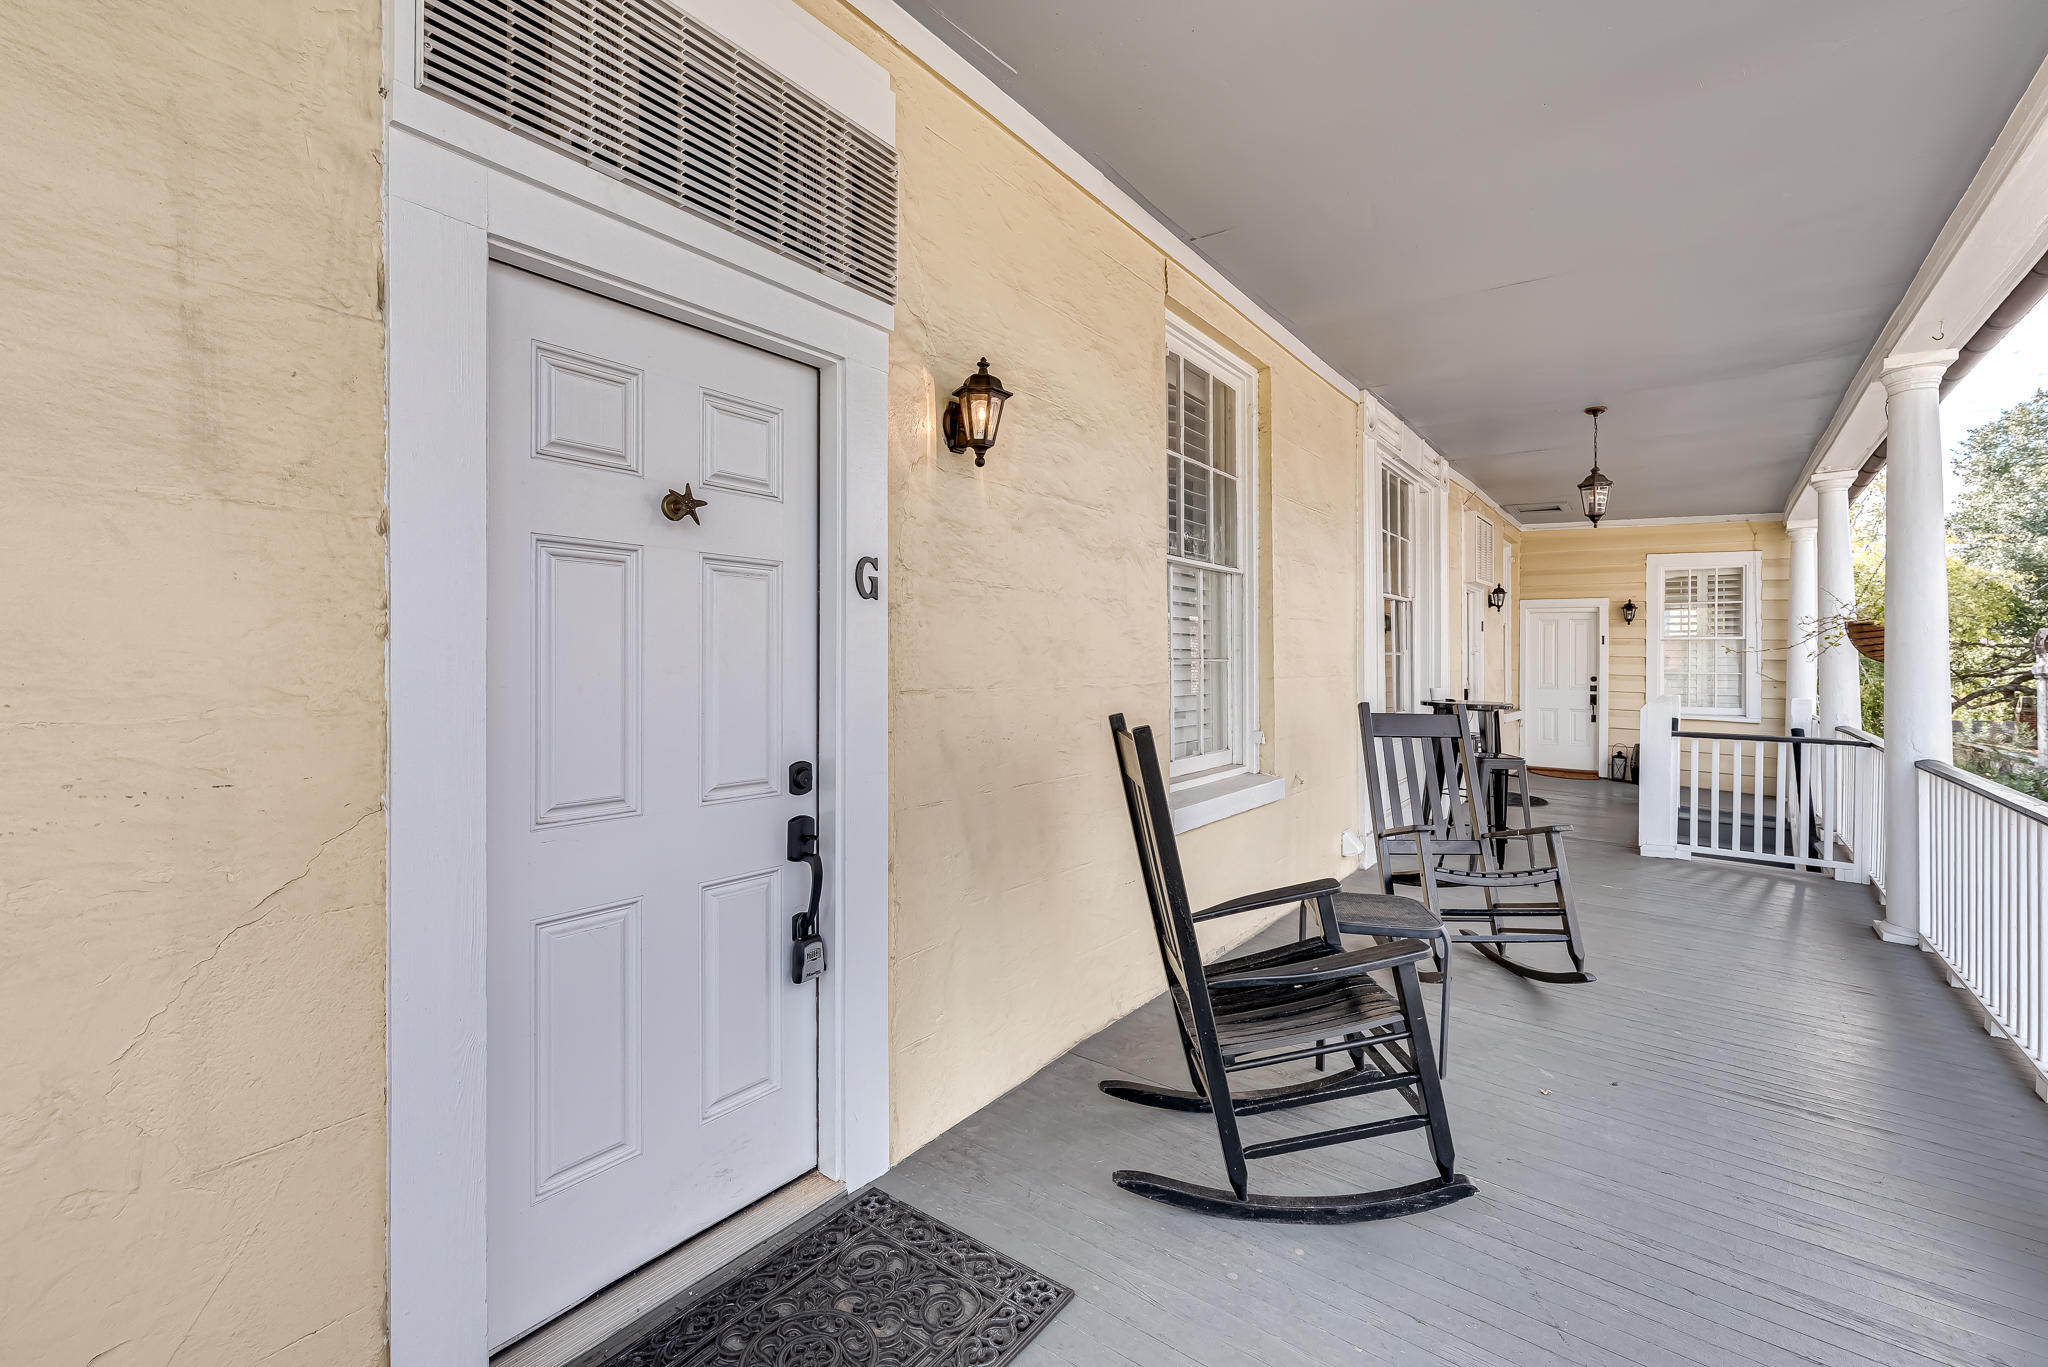 53 Hasell Street UNIT G Charleston, SC 29401